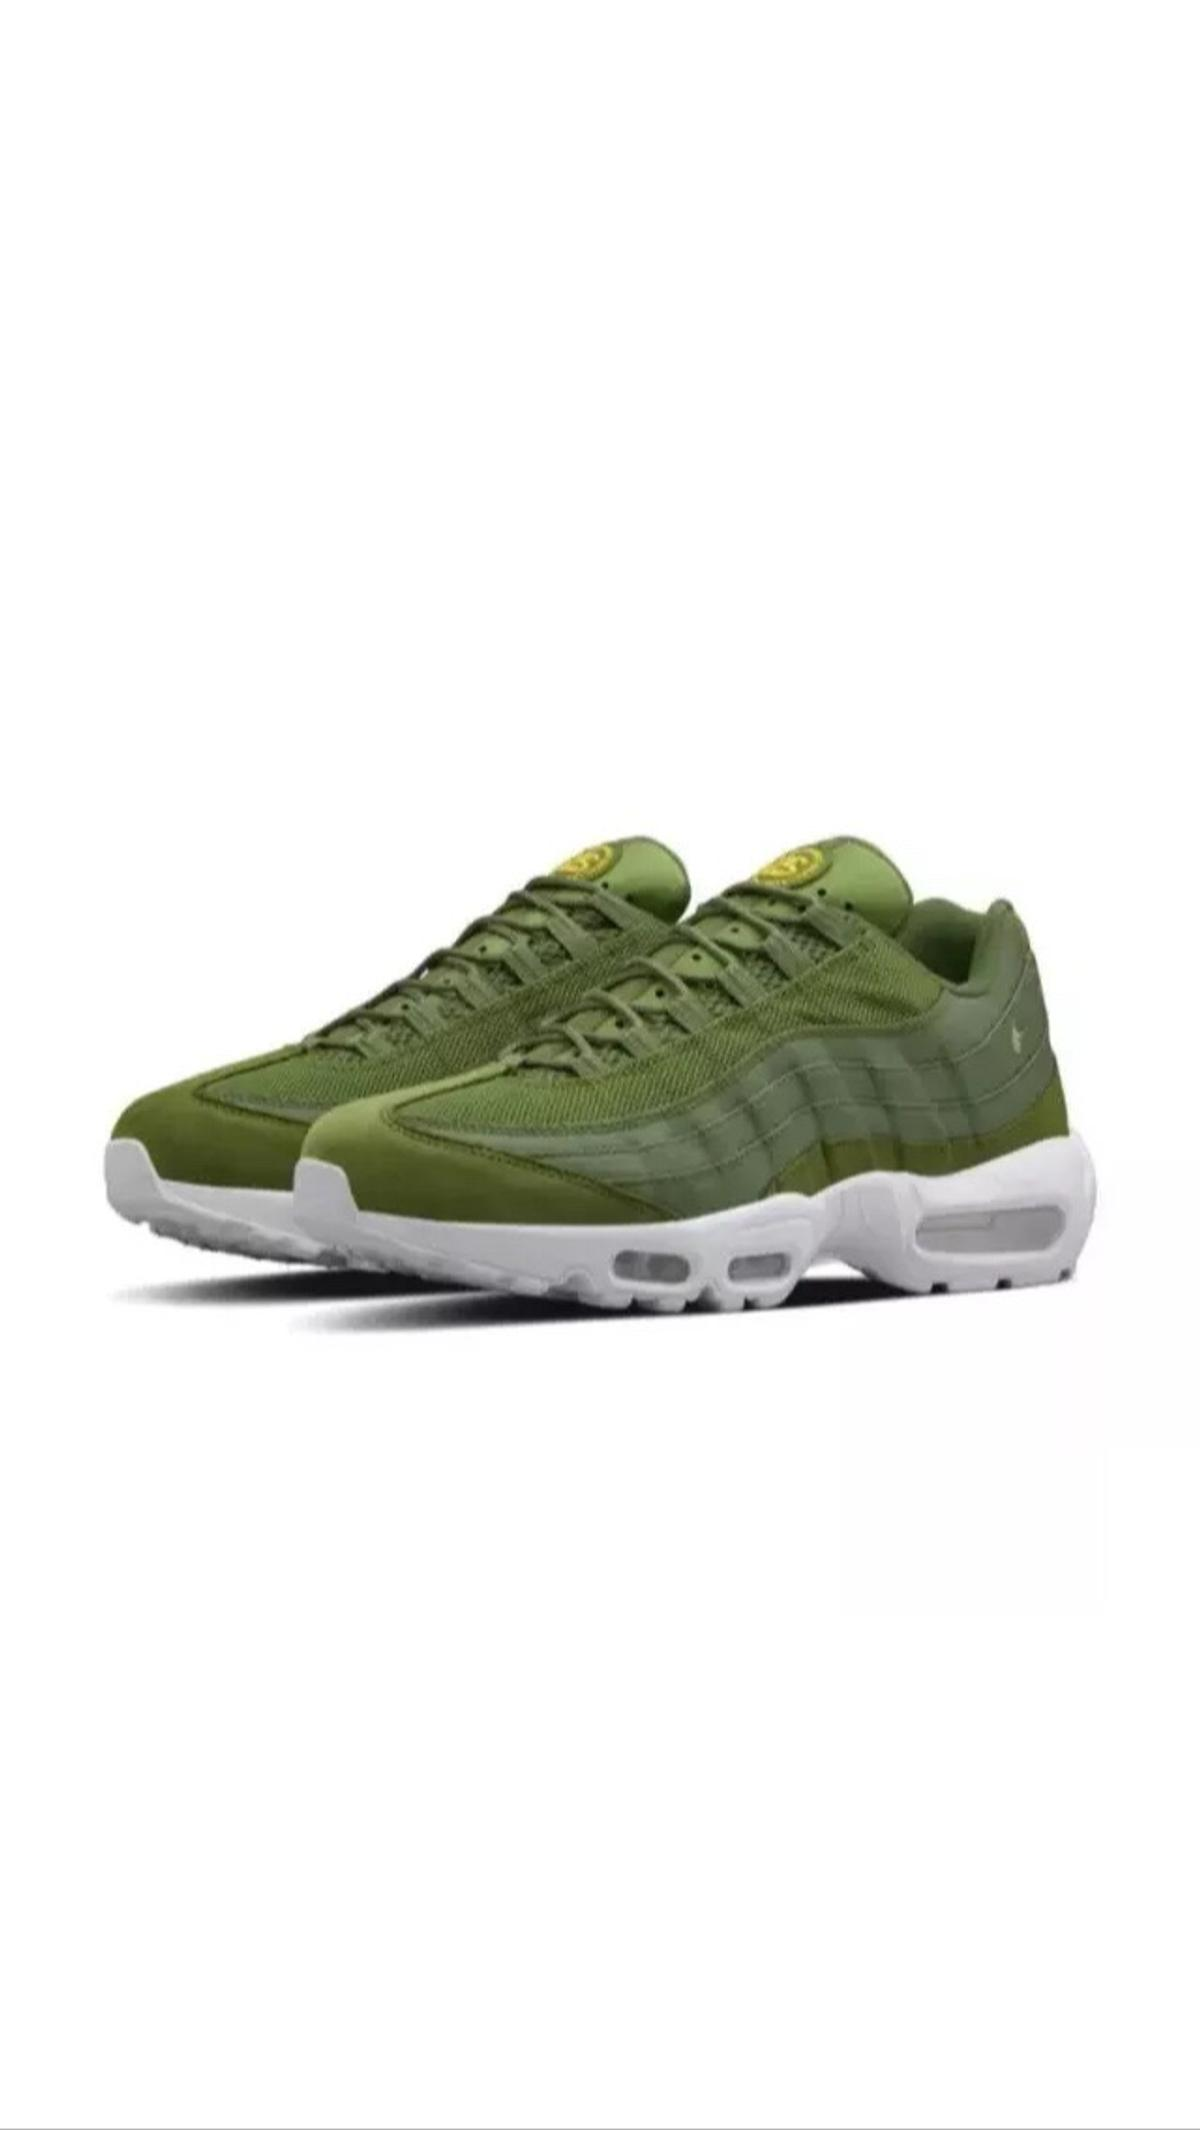 wholesale dealer 2f5ac f8cbd STUSSY X NIKE AIR MAX 95 OLIVE GREEN in RM11 London for ...